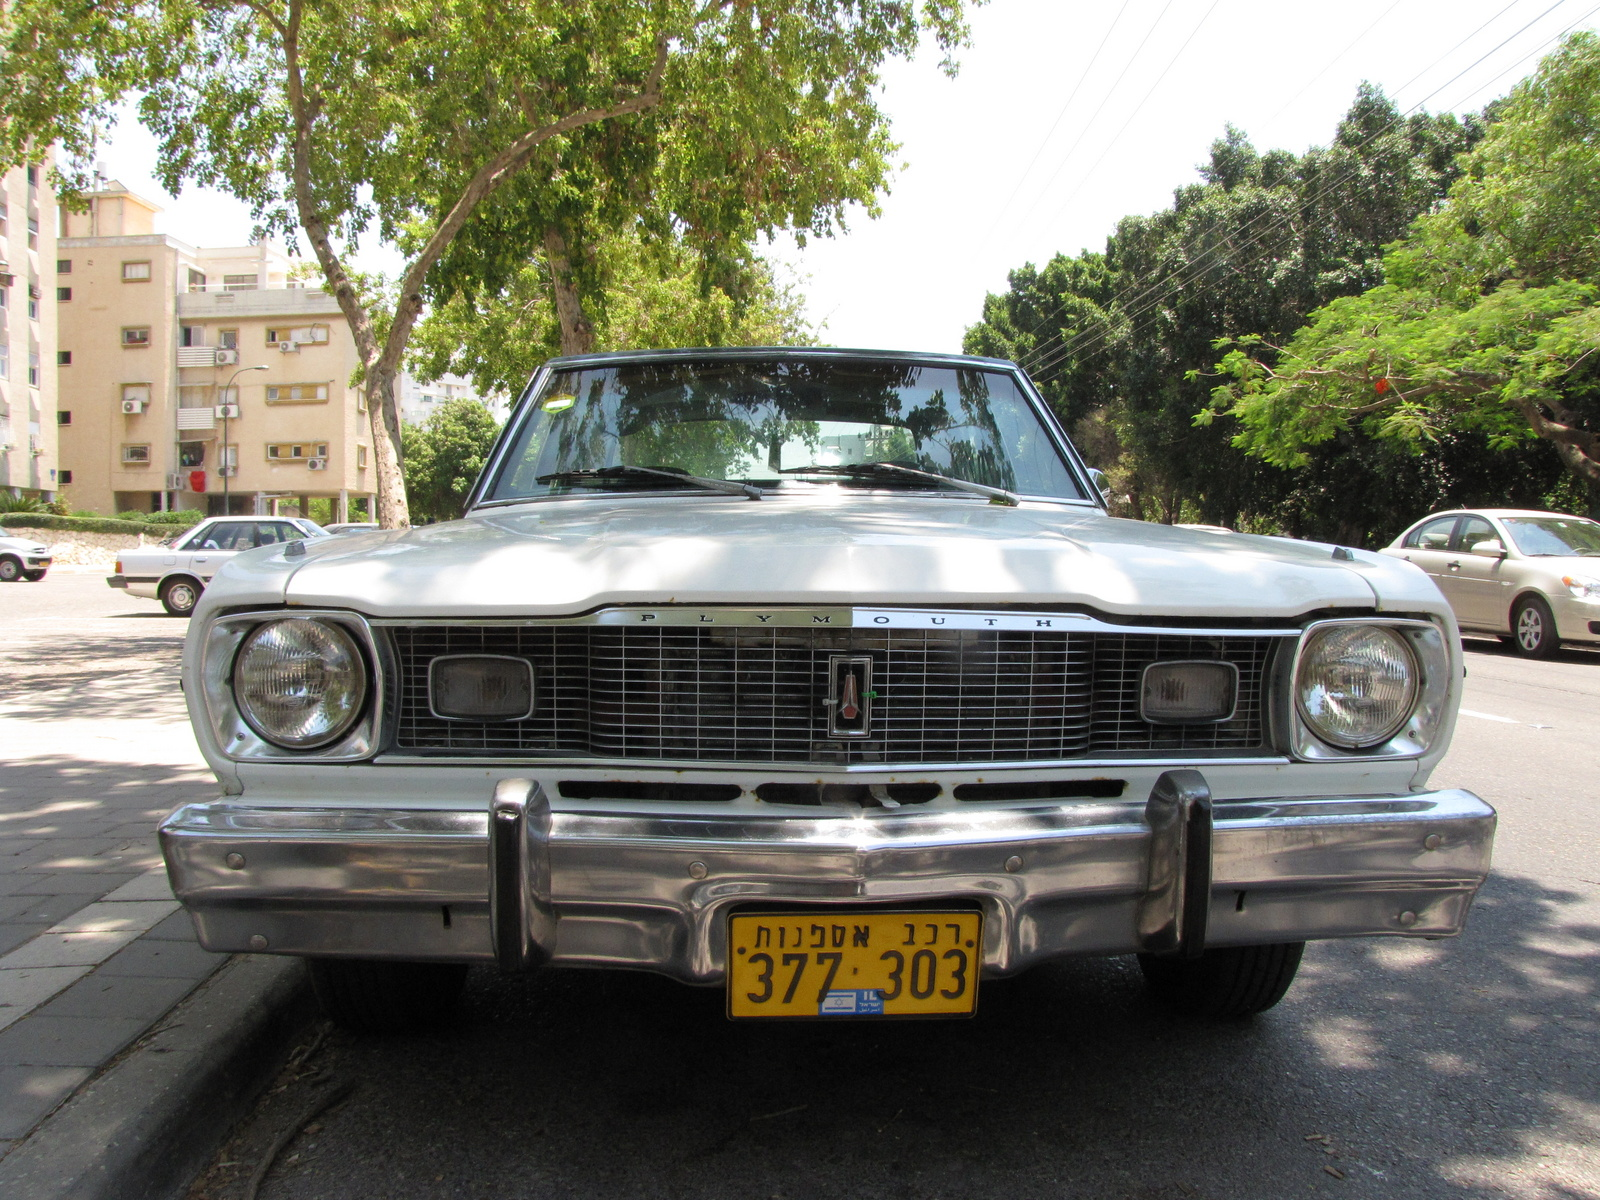 1975 Plymouth Valiant, My valiant front, exterior